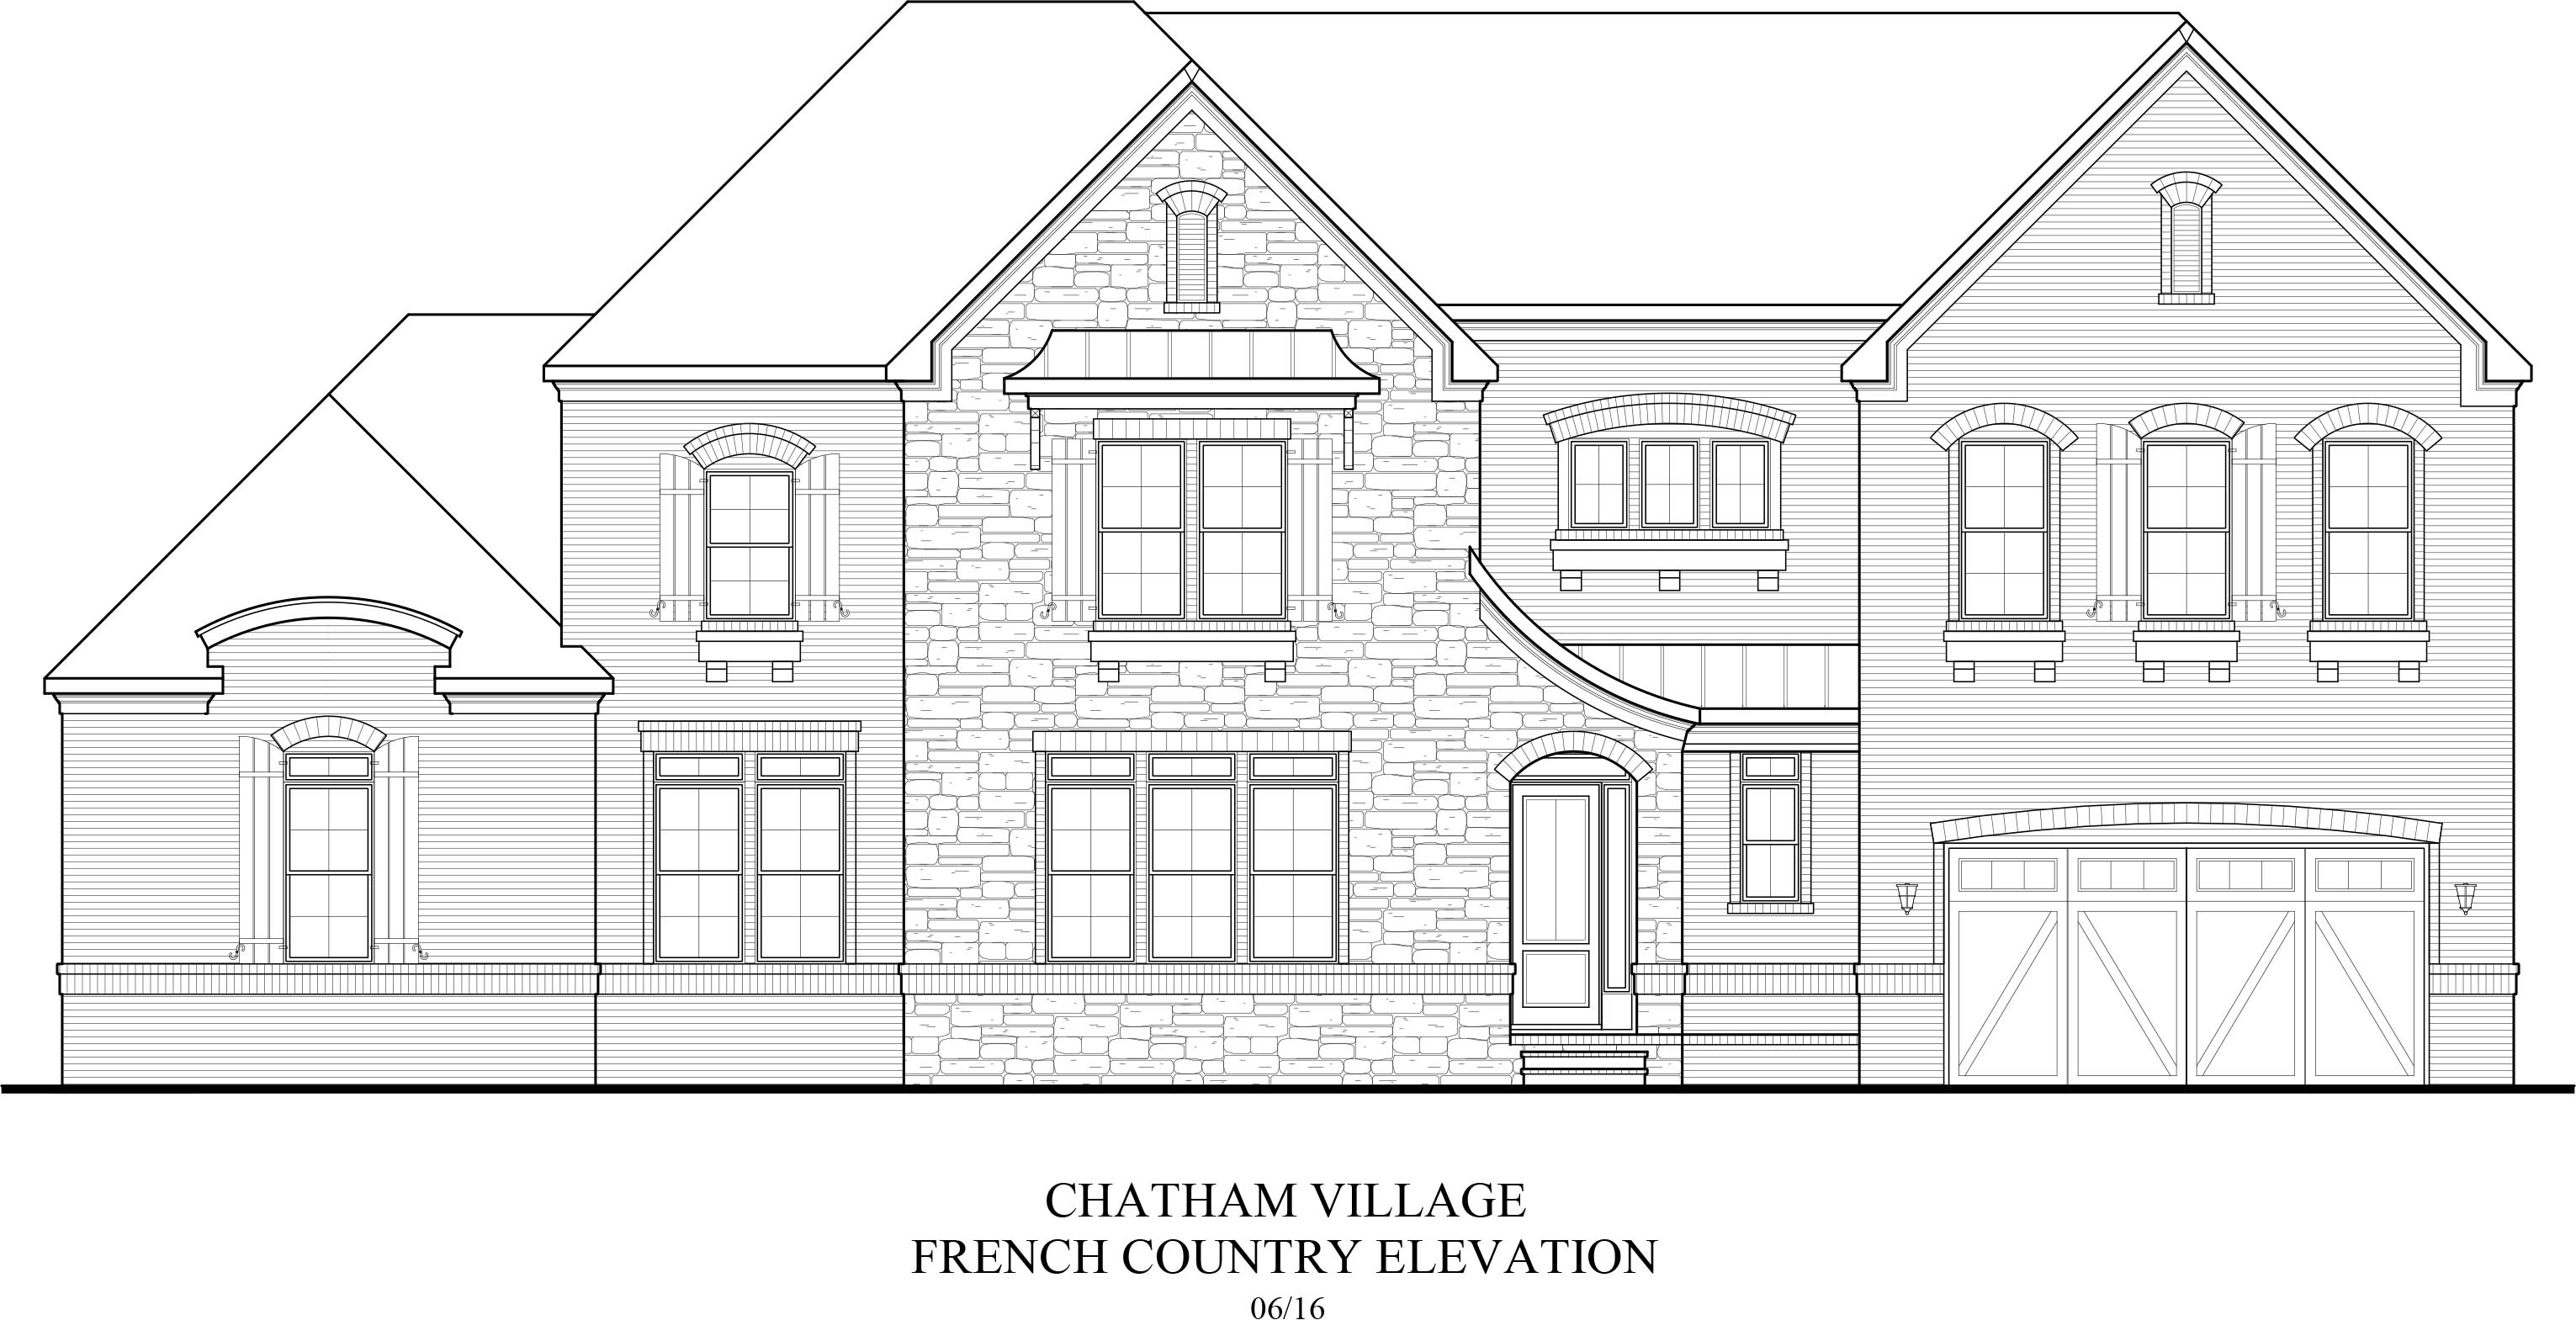 Chatham Village